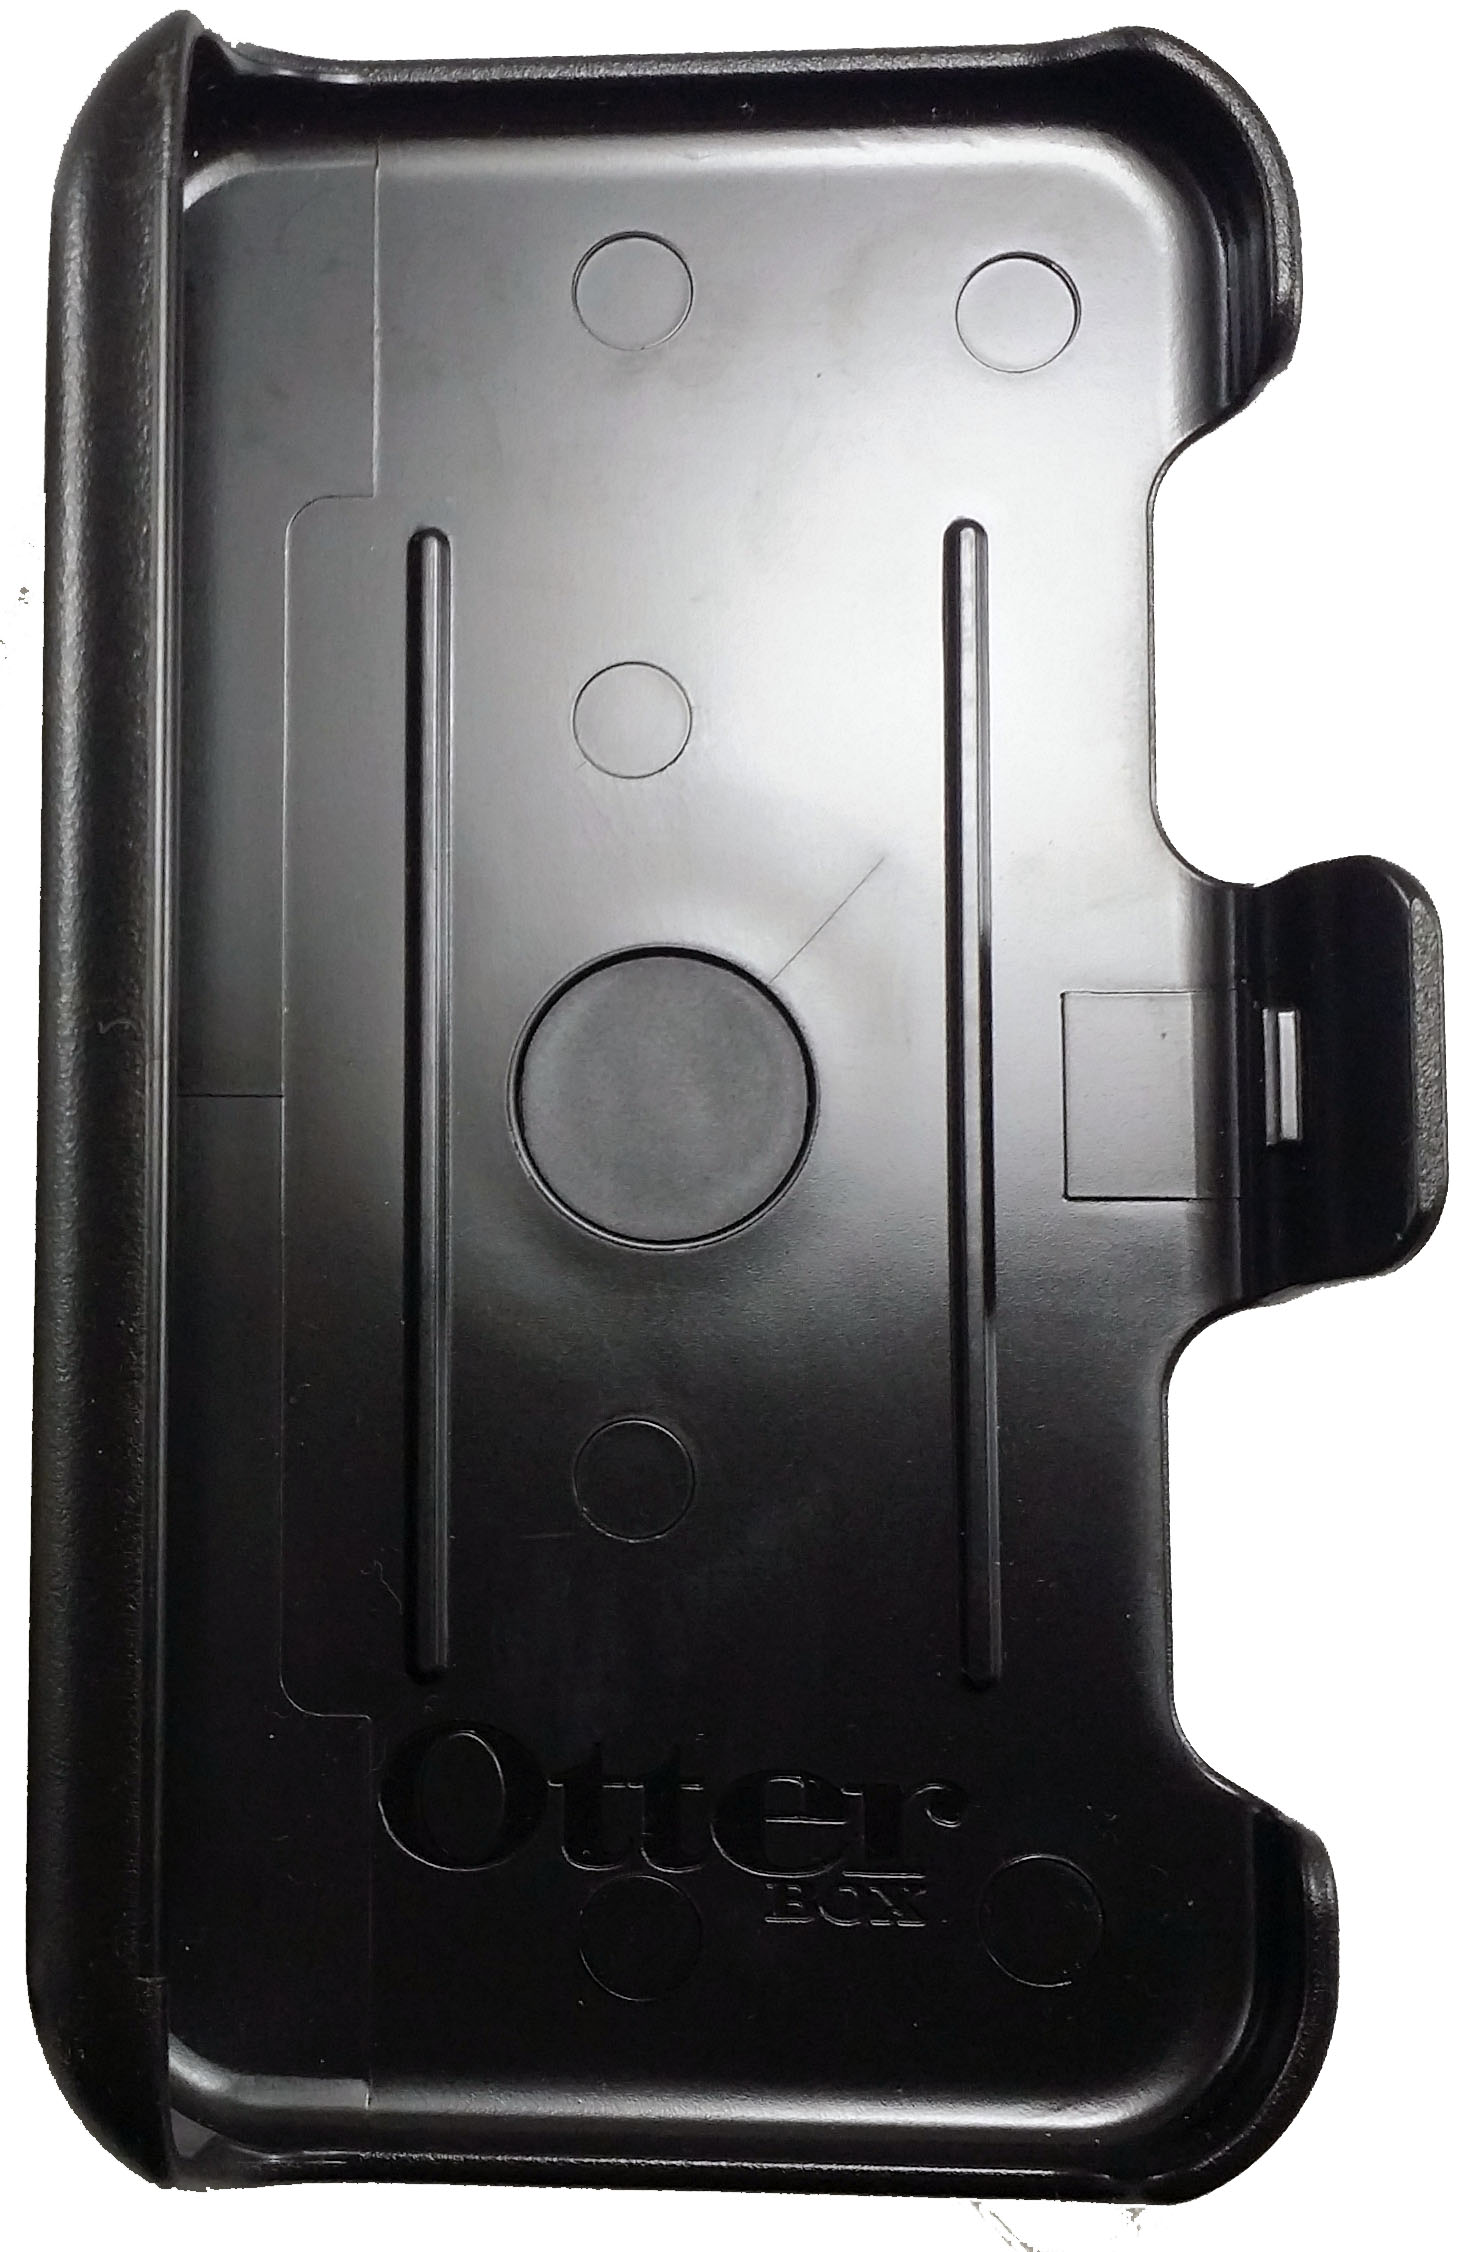 Otterbox Defender Replacement holster Samsung Galaxy S II SkyRocket